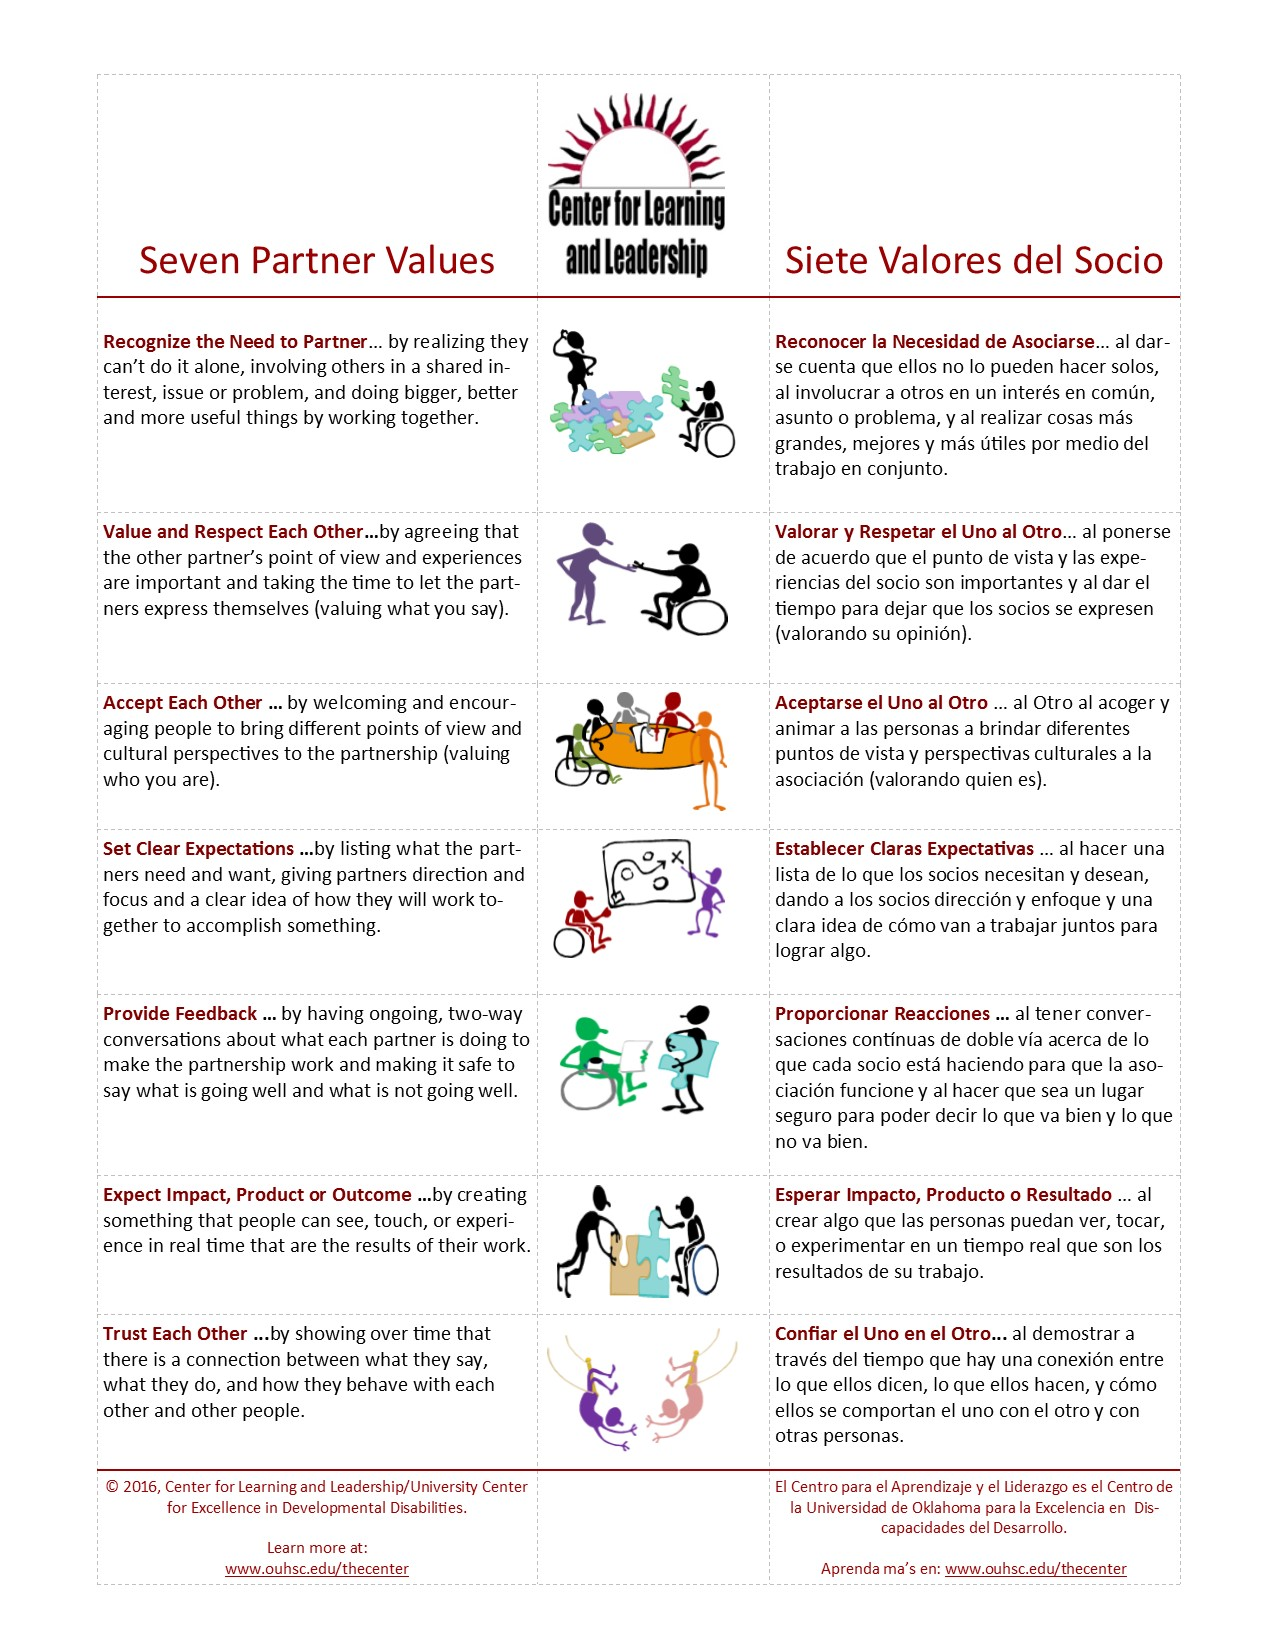 Seven Partner Value Award Image